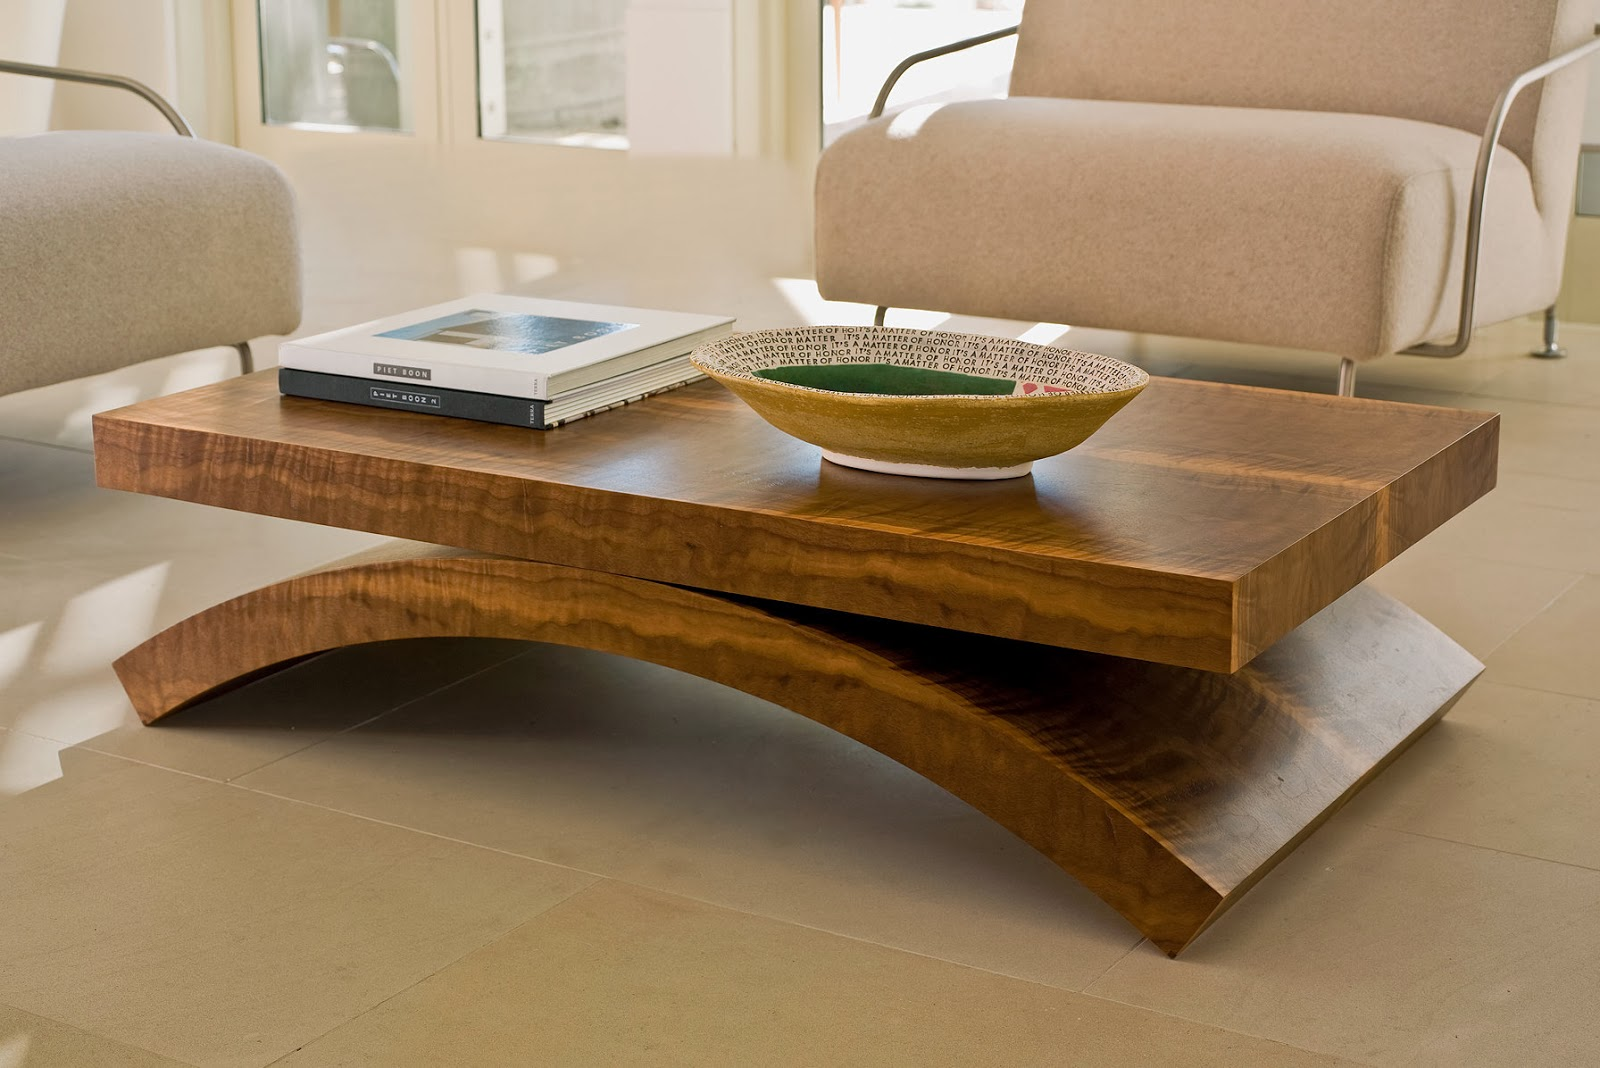 New contemporary coffee tables designs 2014 ideas 5 small interior ideas